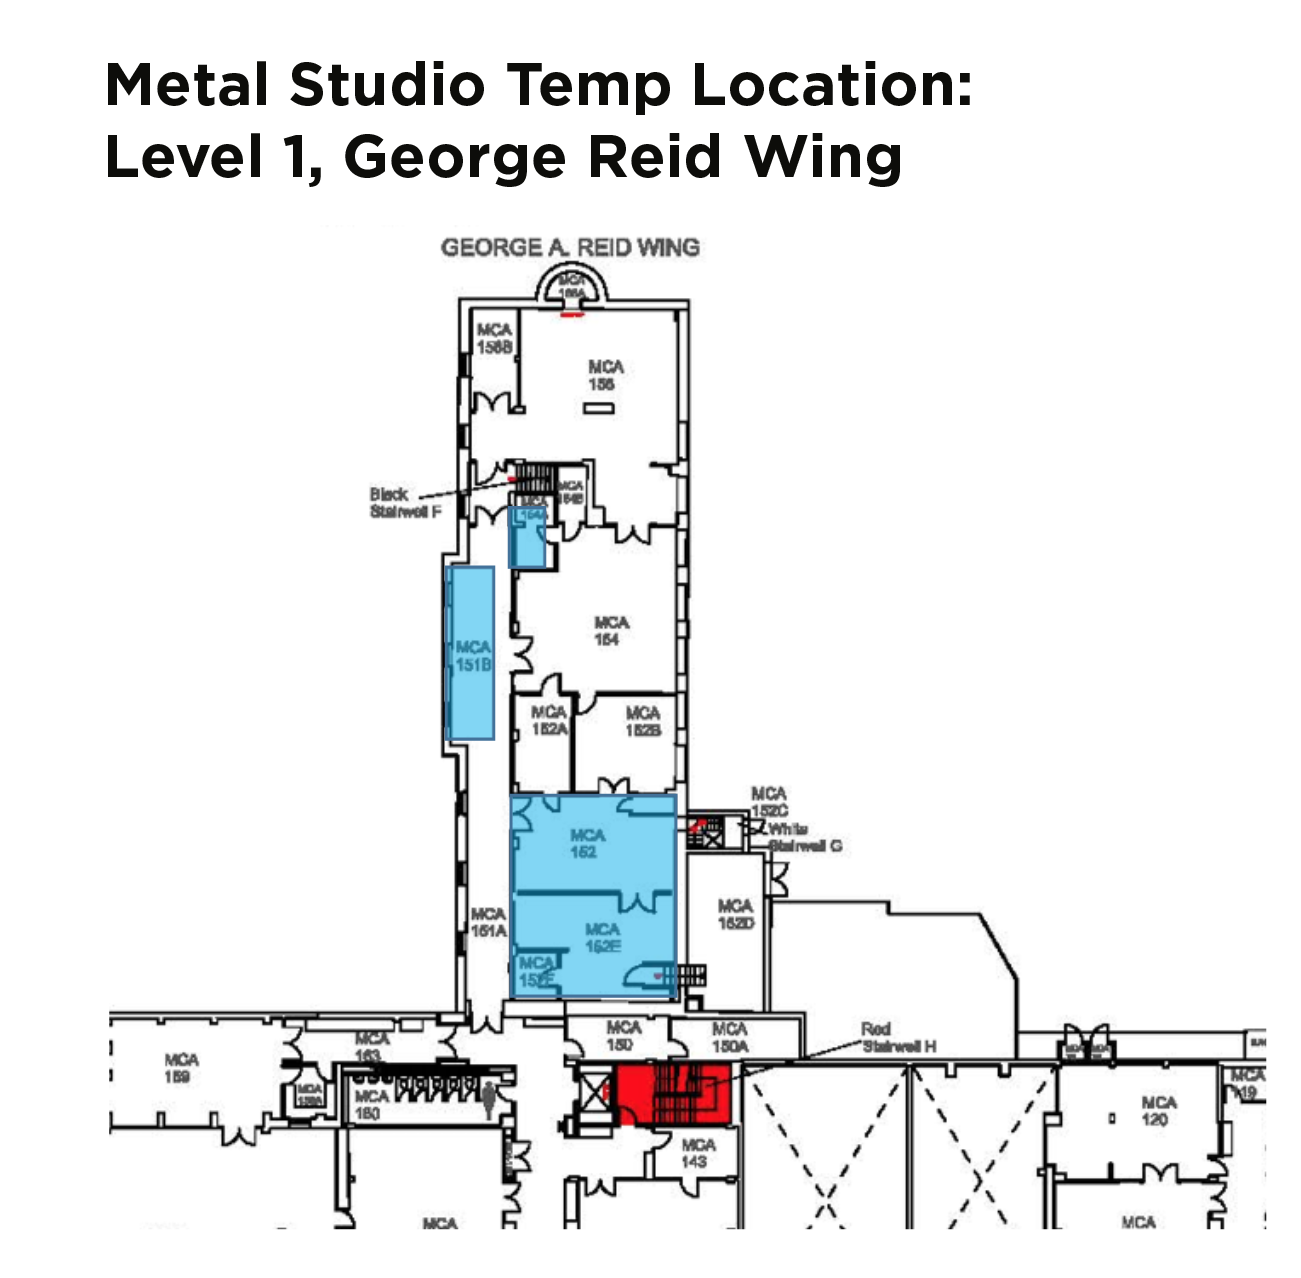 Metal-studio-temp location